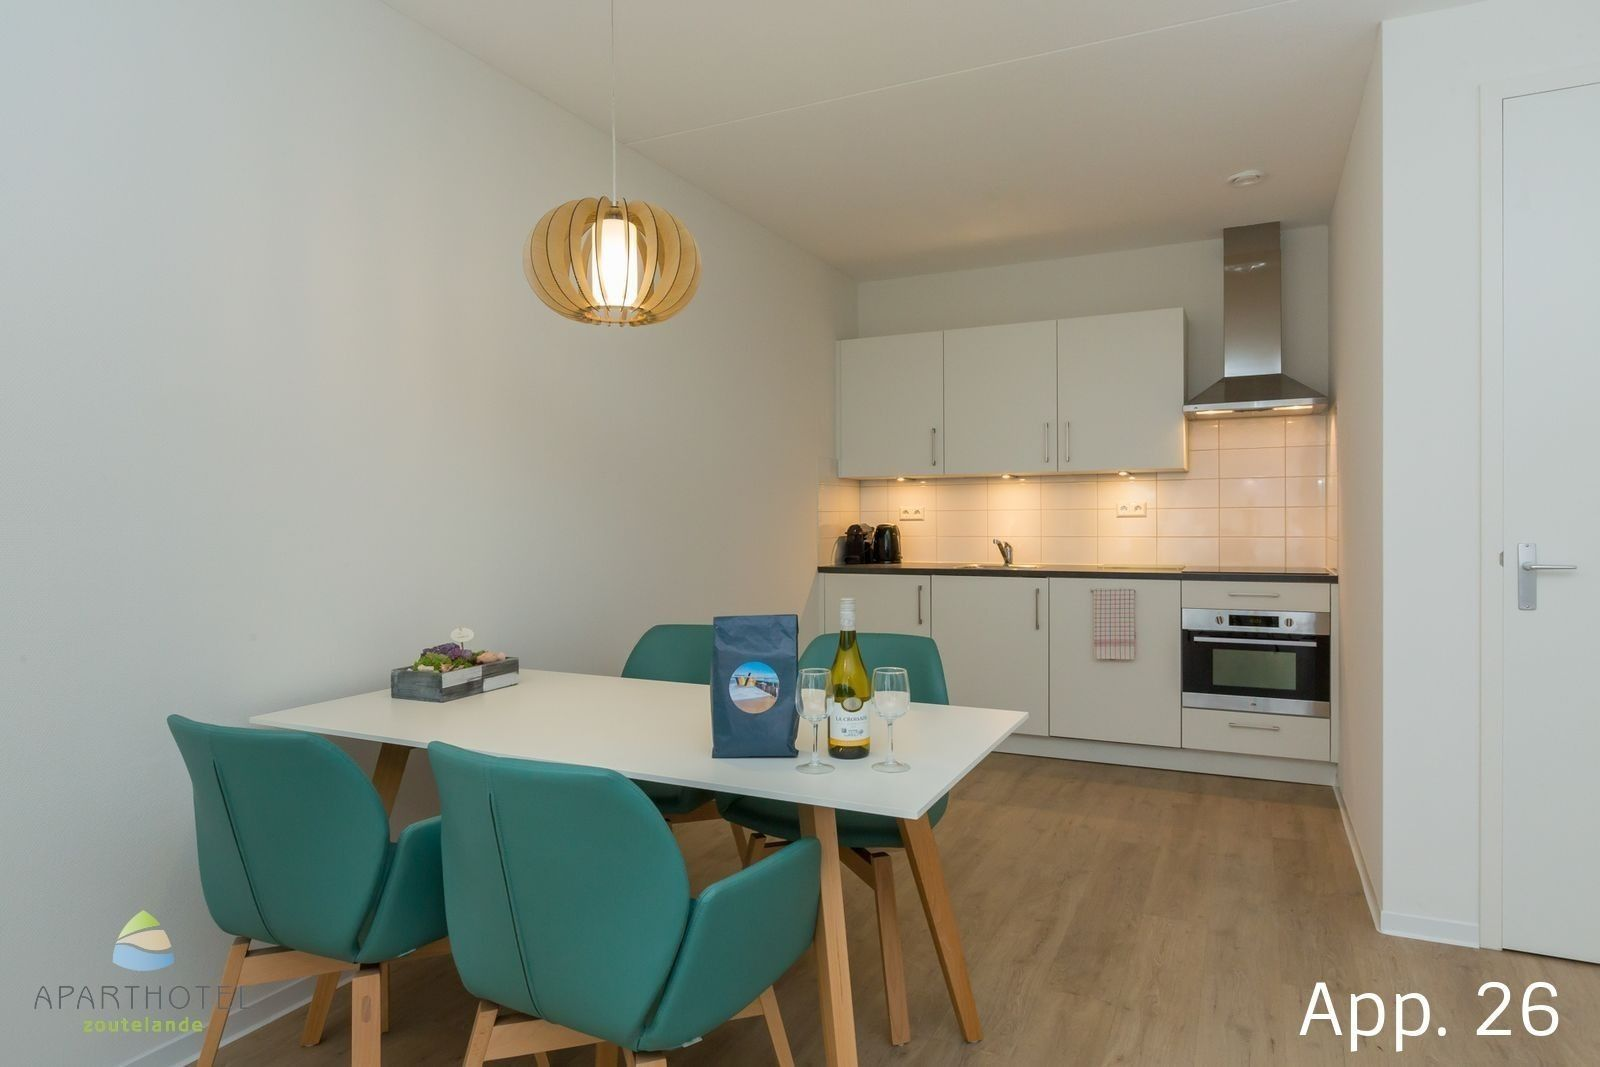 Luxuriöses Appartement für 4 Personen | Zoutelande